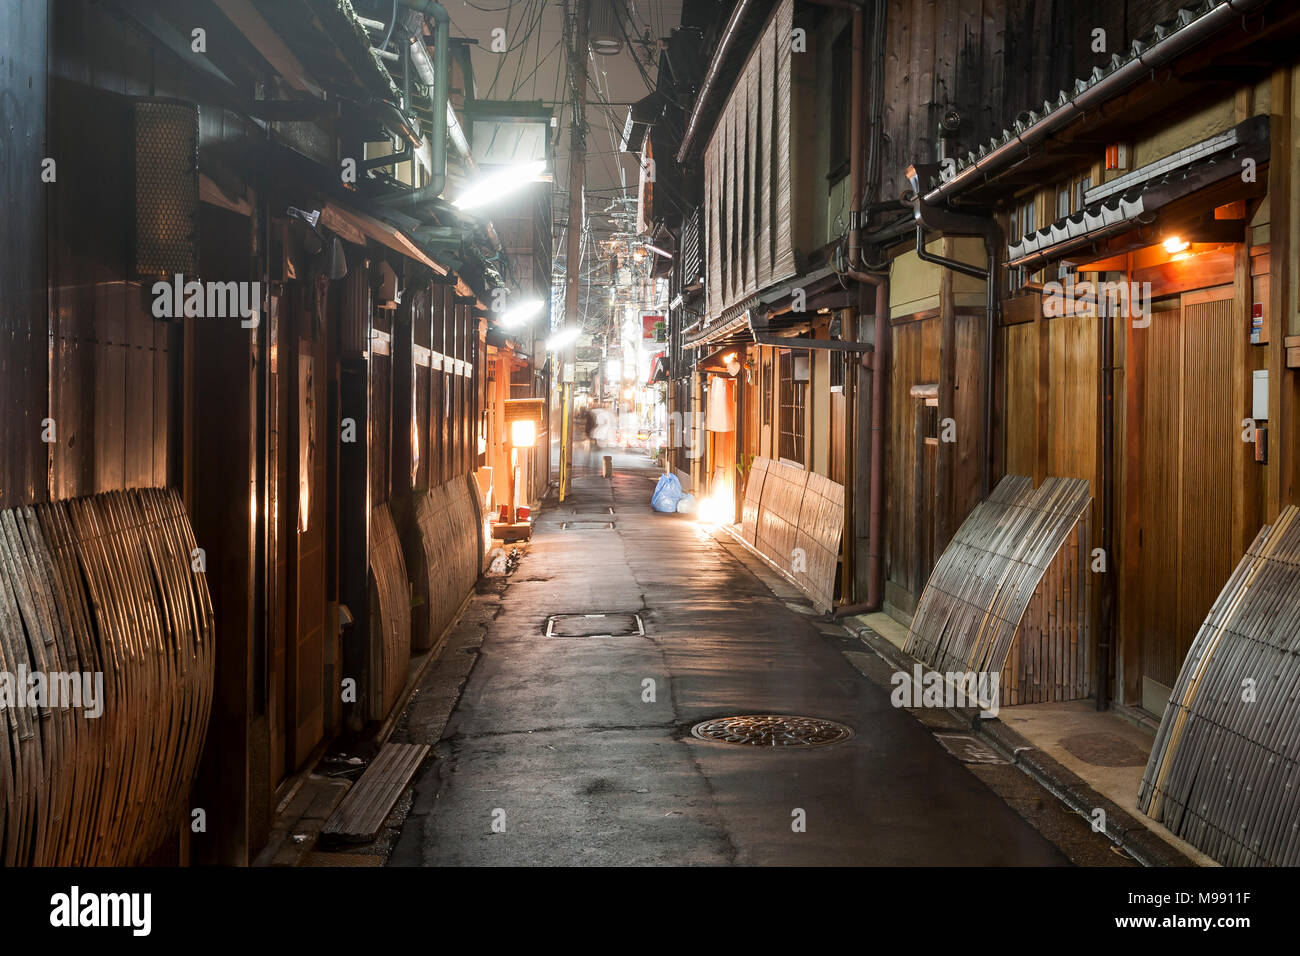 Gion the old ancient center of Kyoto at night, Japan - Stock Image